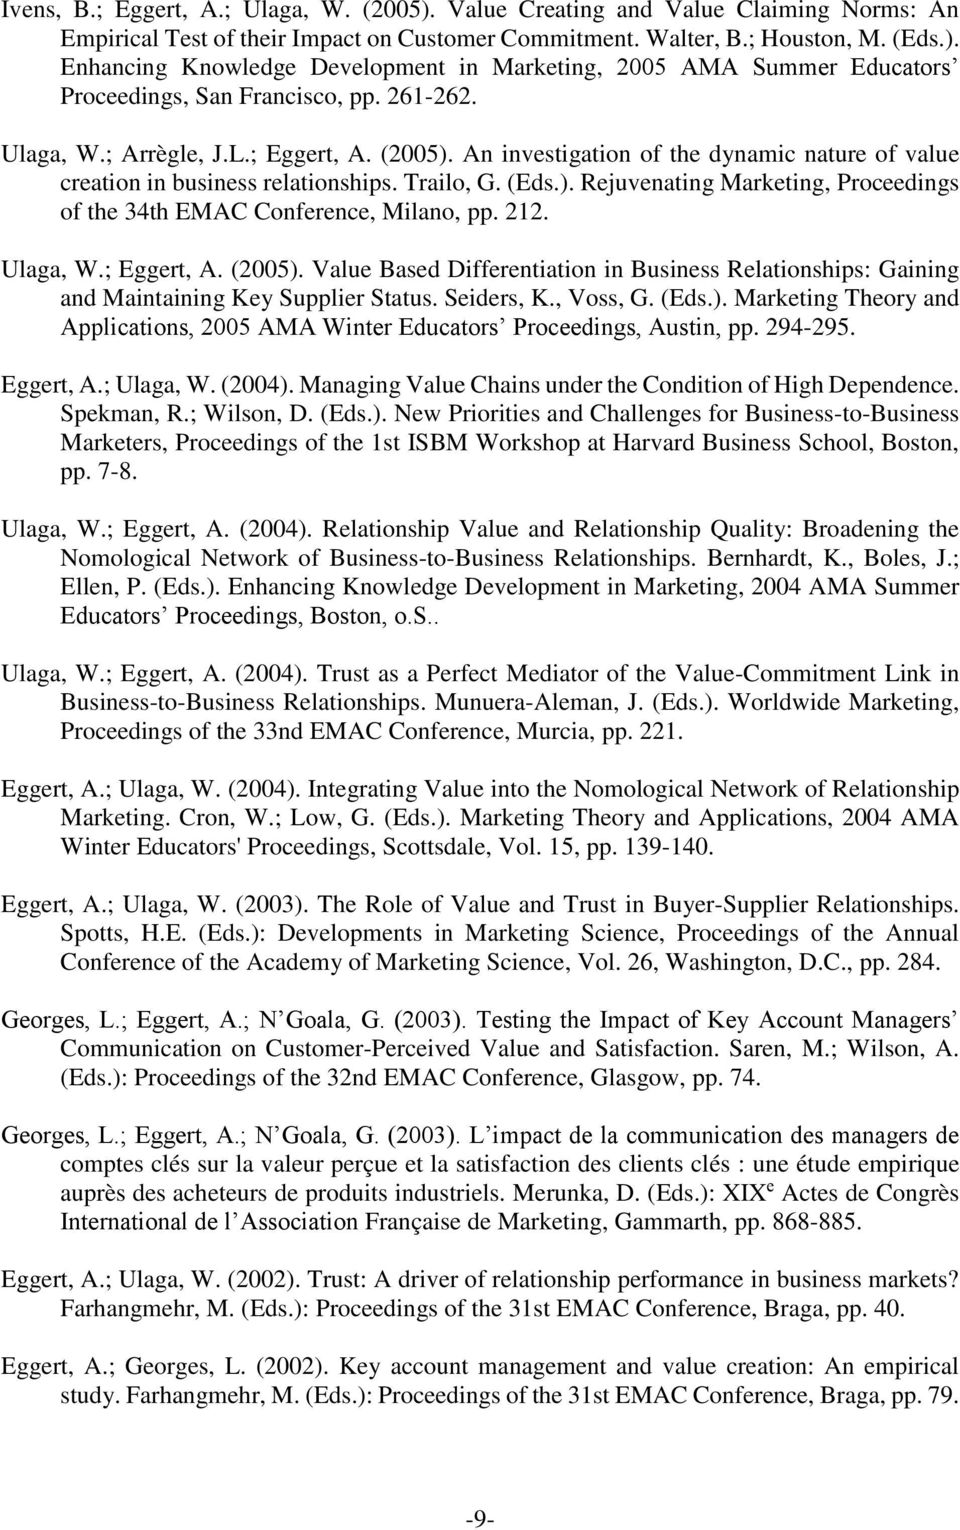 212. Ulaga, W.; Eggert, A. (2005). Value Based Differentiation in Business Relationships: Gaining and Maintaining Key Supplier Status. Seiders, K., Voss, G. (Eds.). Marketing Theory and Applications, 2005 AMA Winter Educators Proceedings, Austin, pp.